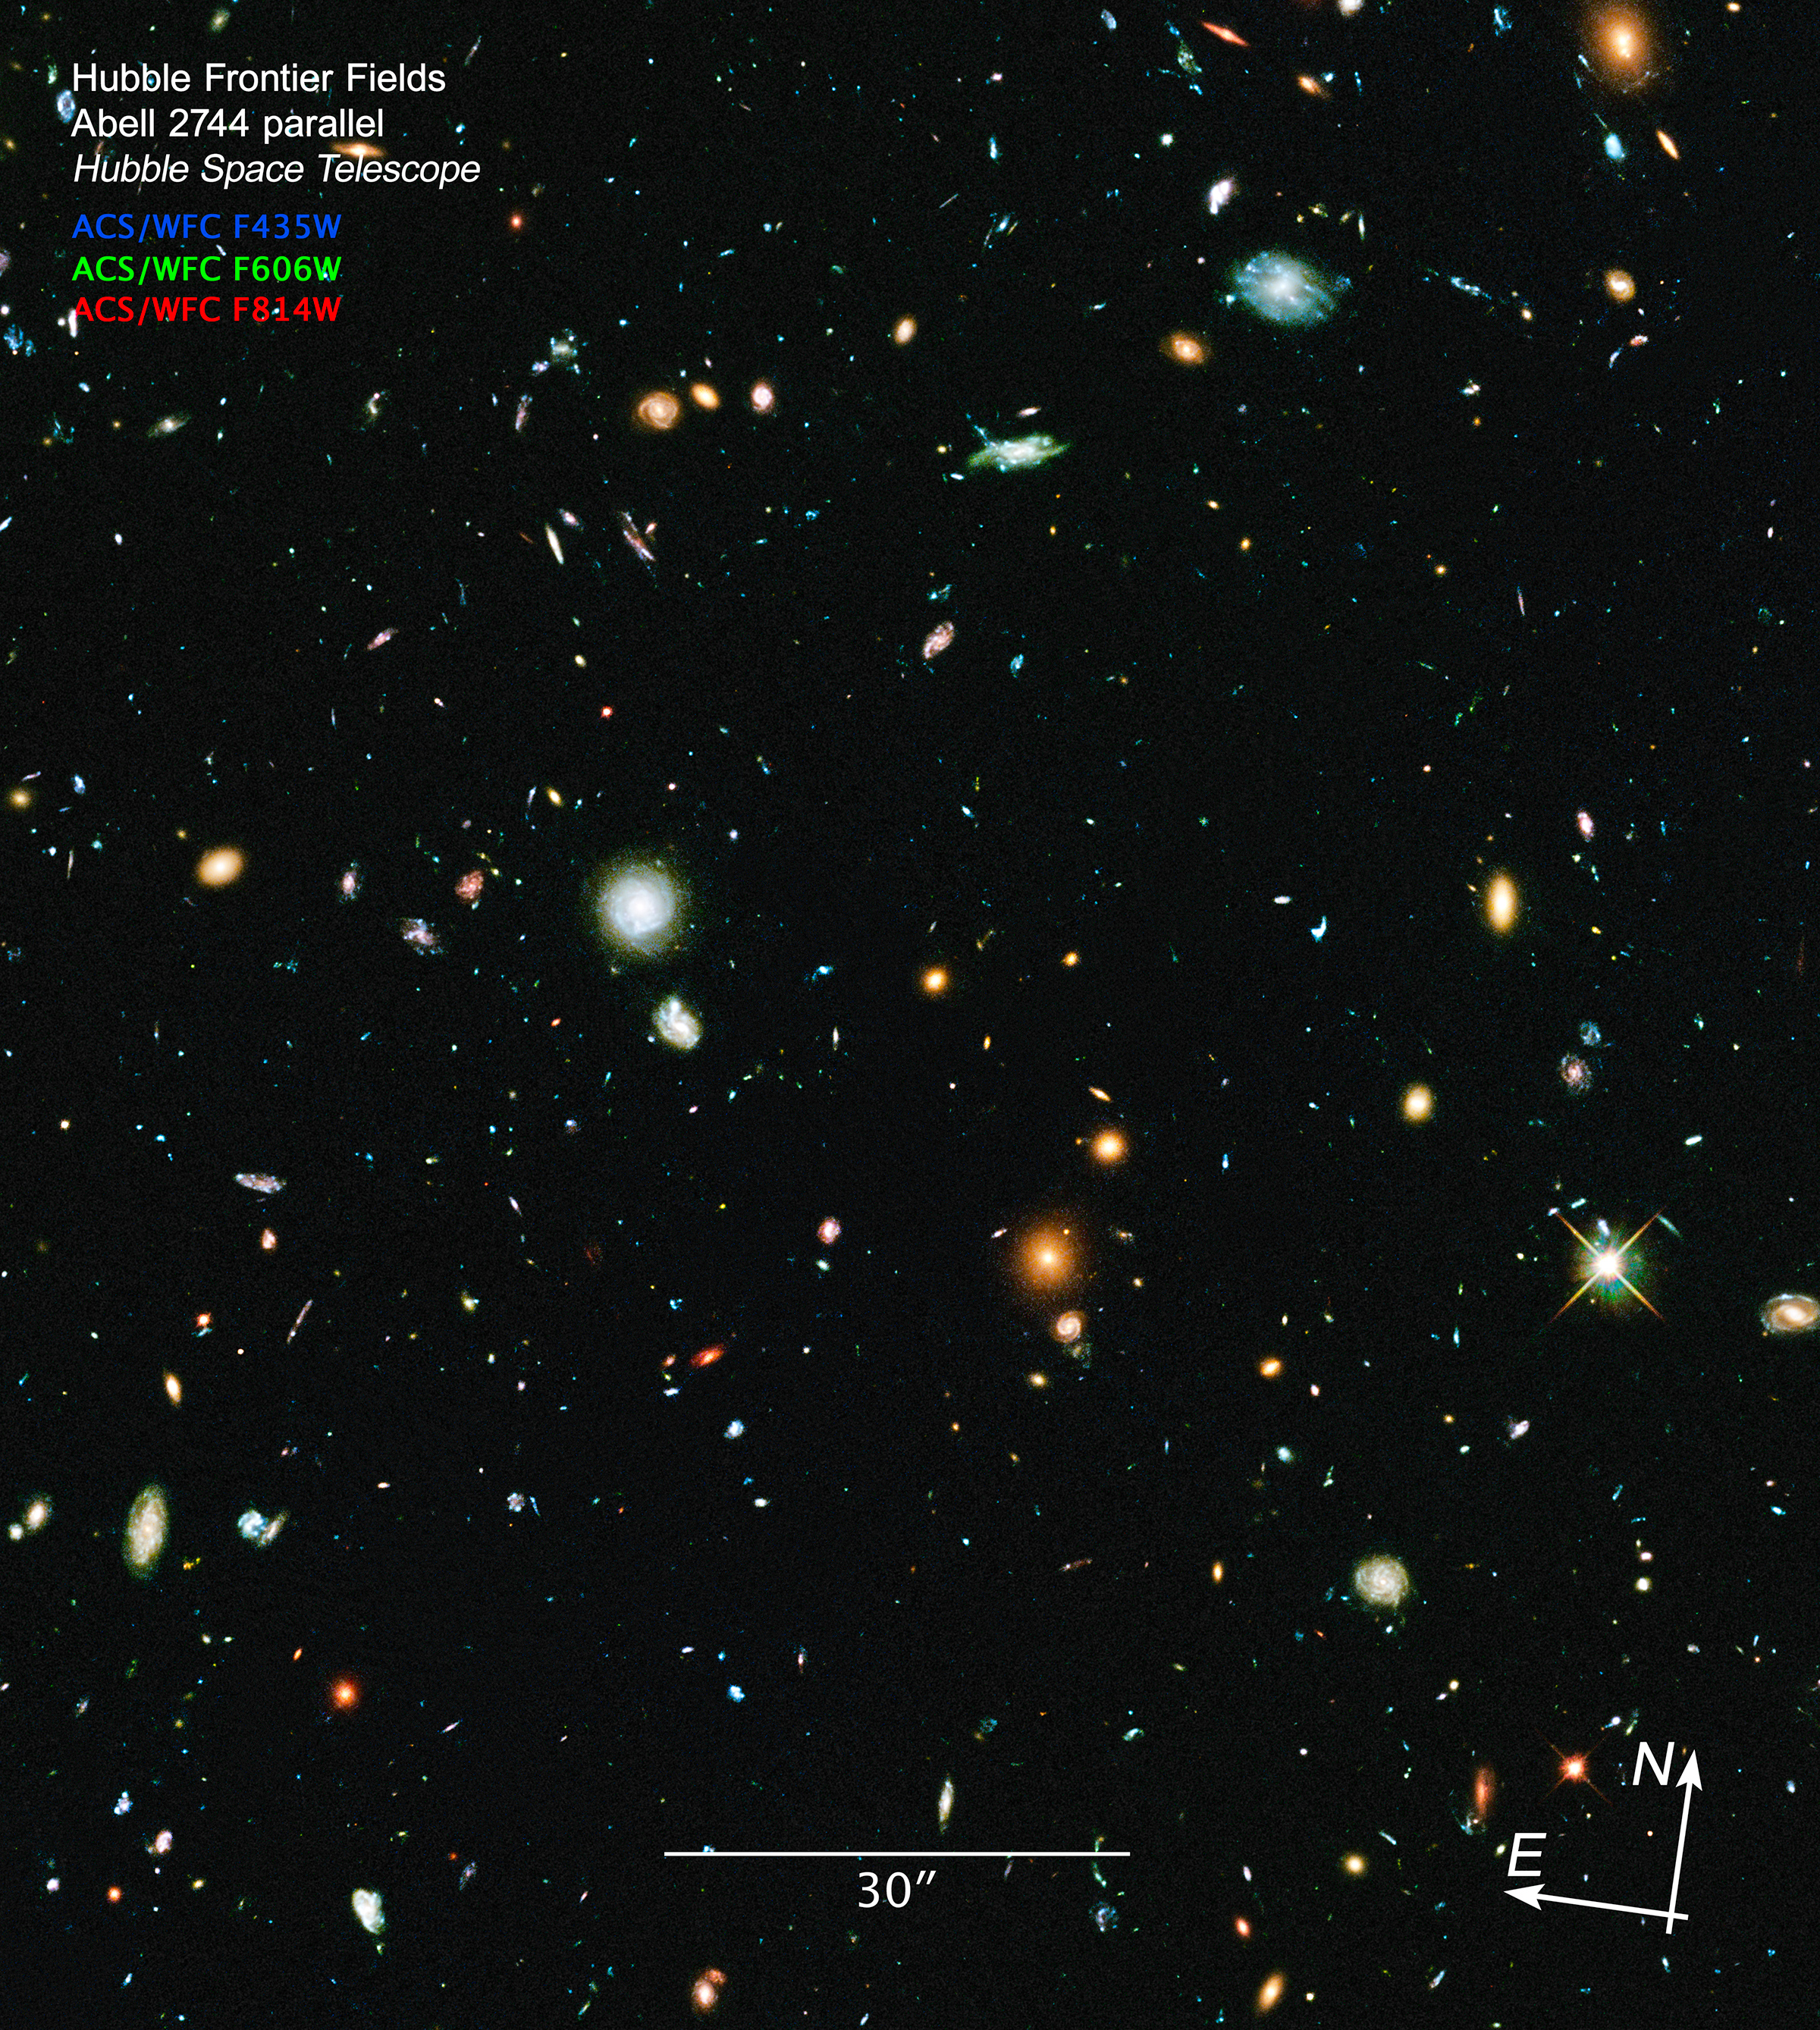 Compass and Scale for Hubble Frontier Field Abell 2744-Parallel